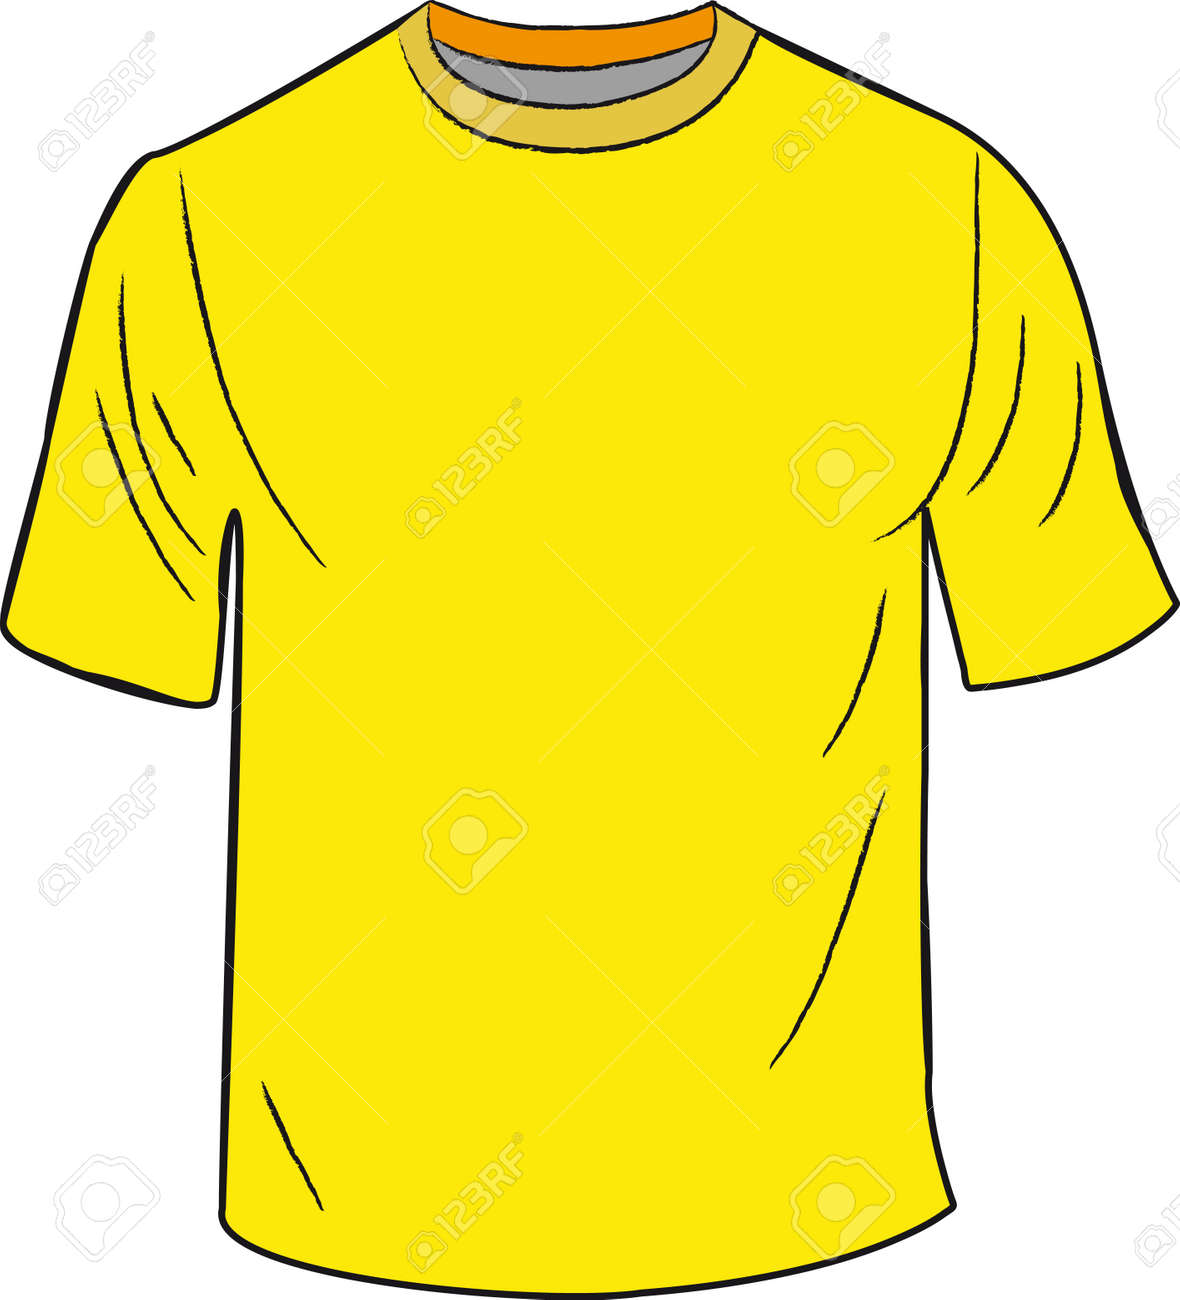 T Shirt Design Template Stock Vector